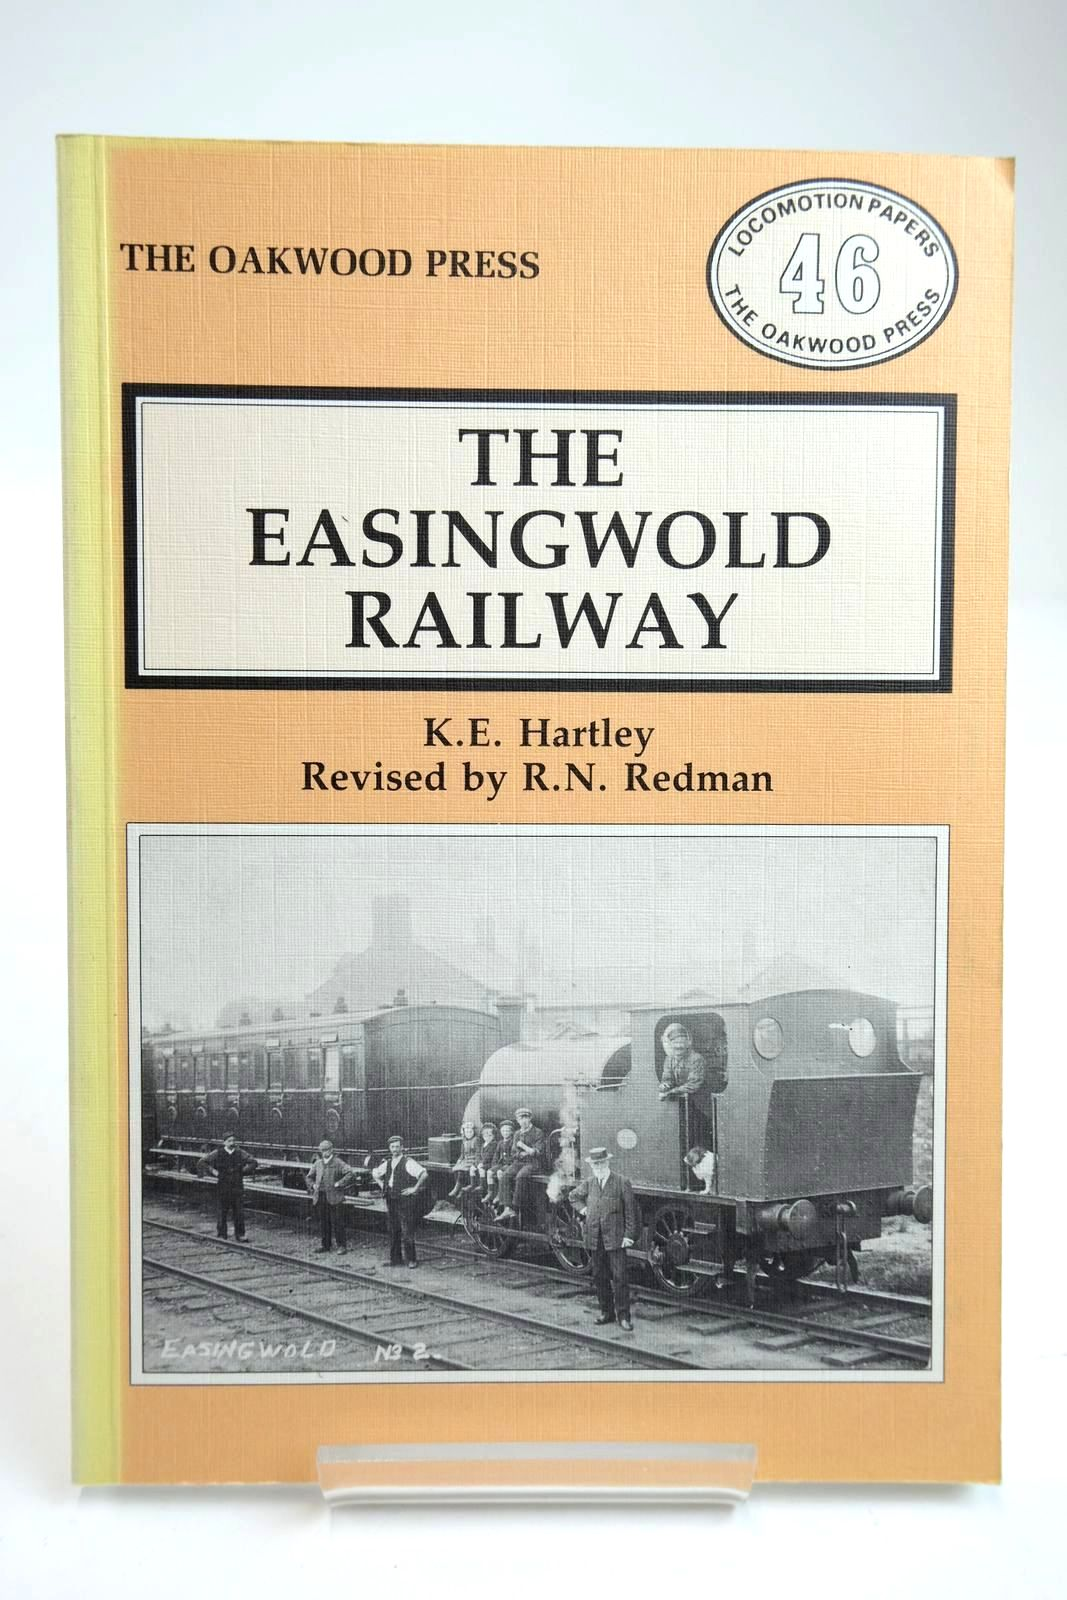 Photo of THE EASINGWOLD RAILWAY written by Hartley, K.E. Redman, R.N. published by The Oakwood Press (STOCK CODE: 2133697)  for sale by Stella & Rose's Books